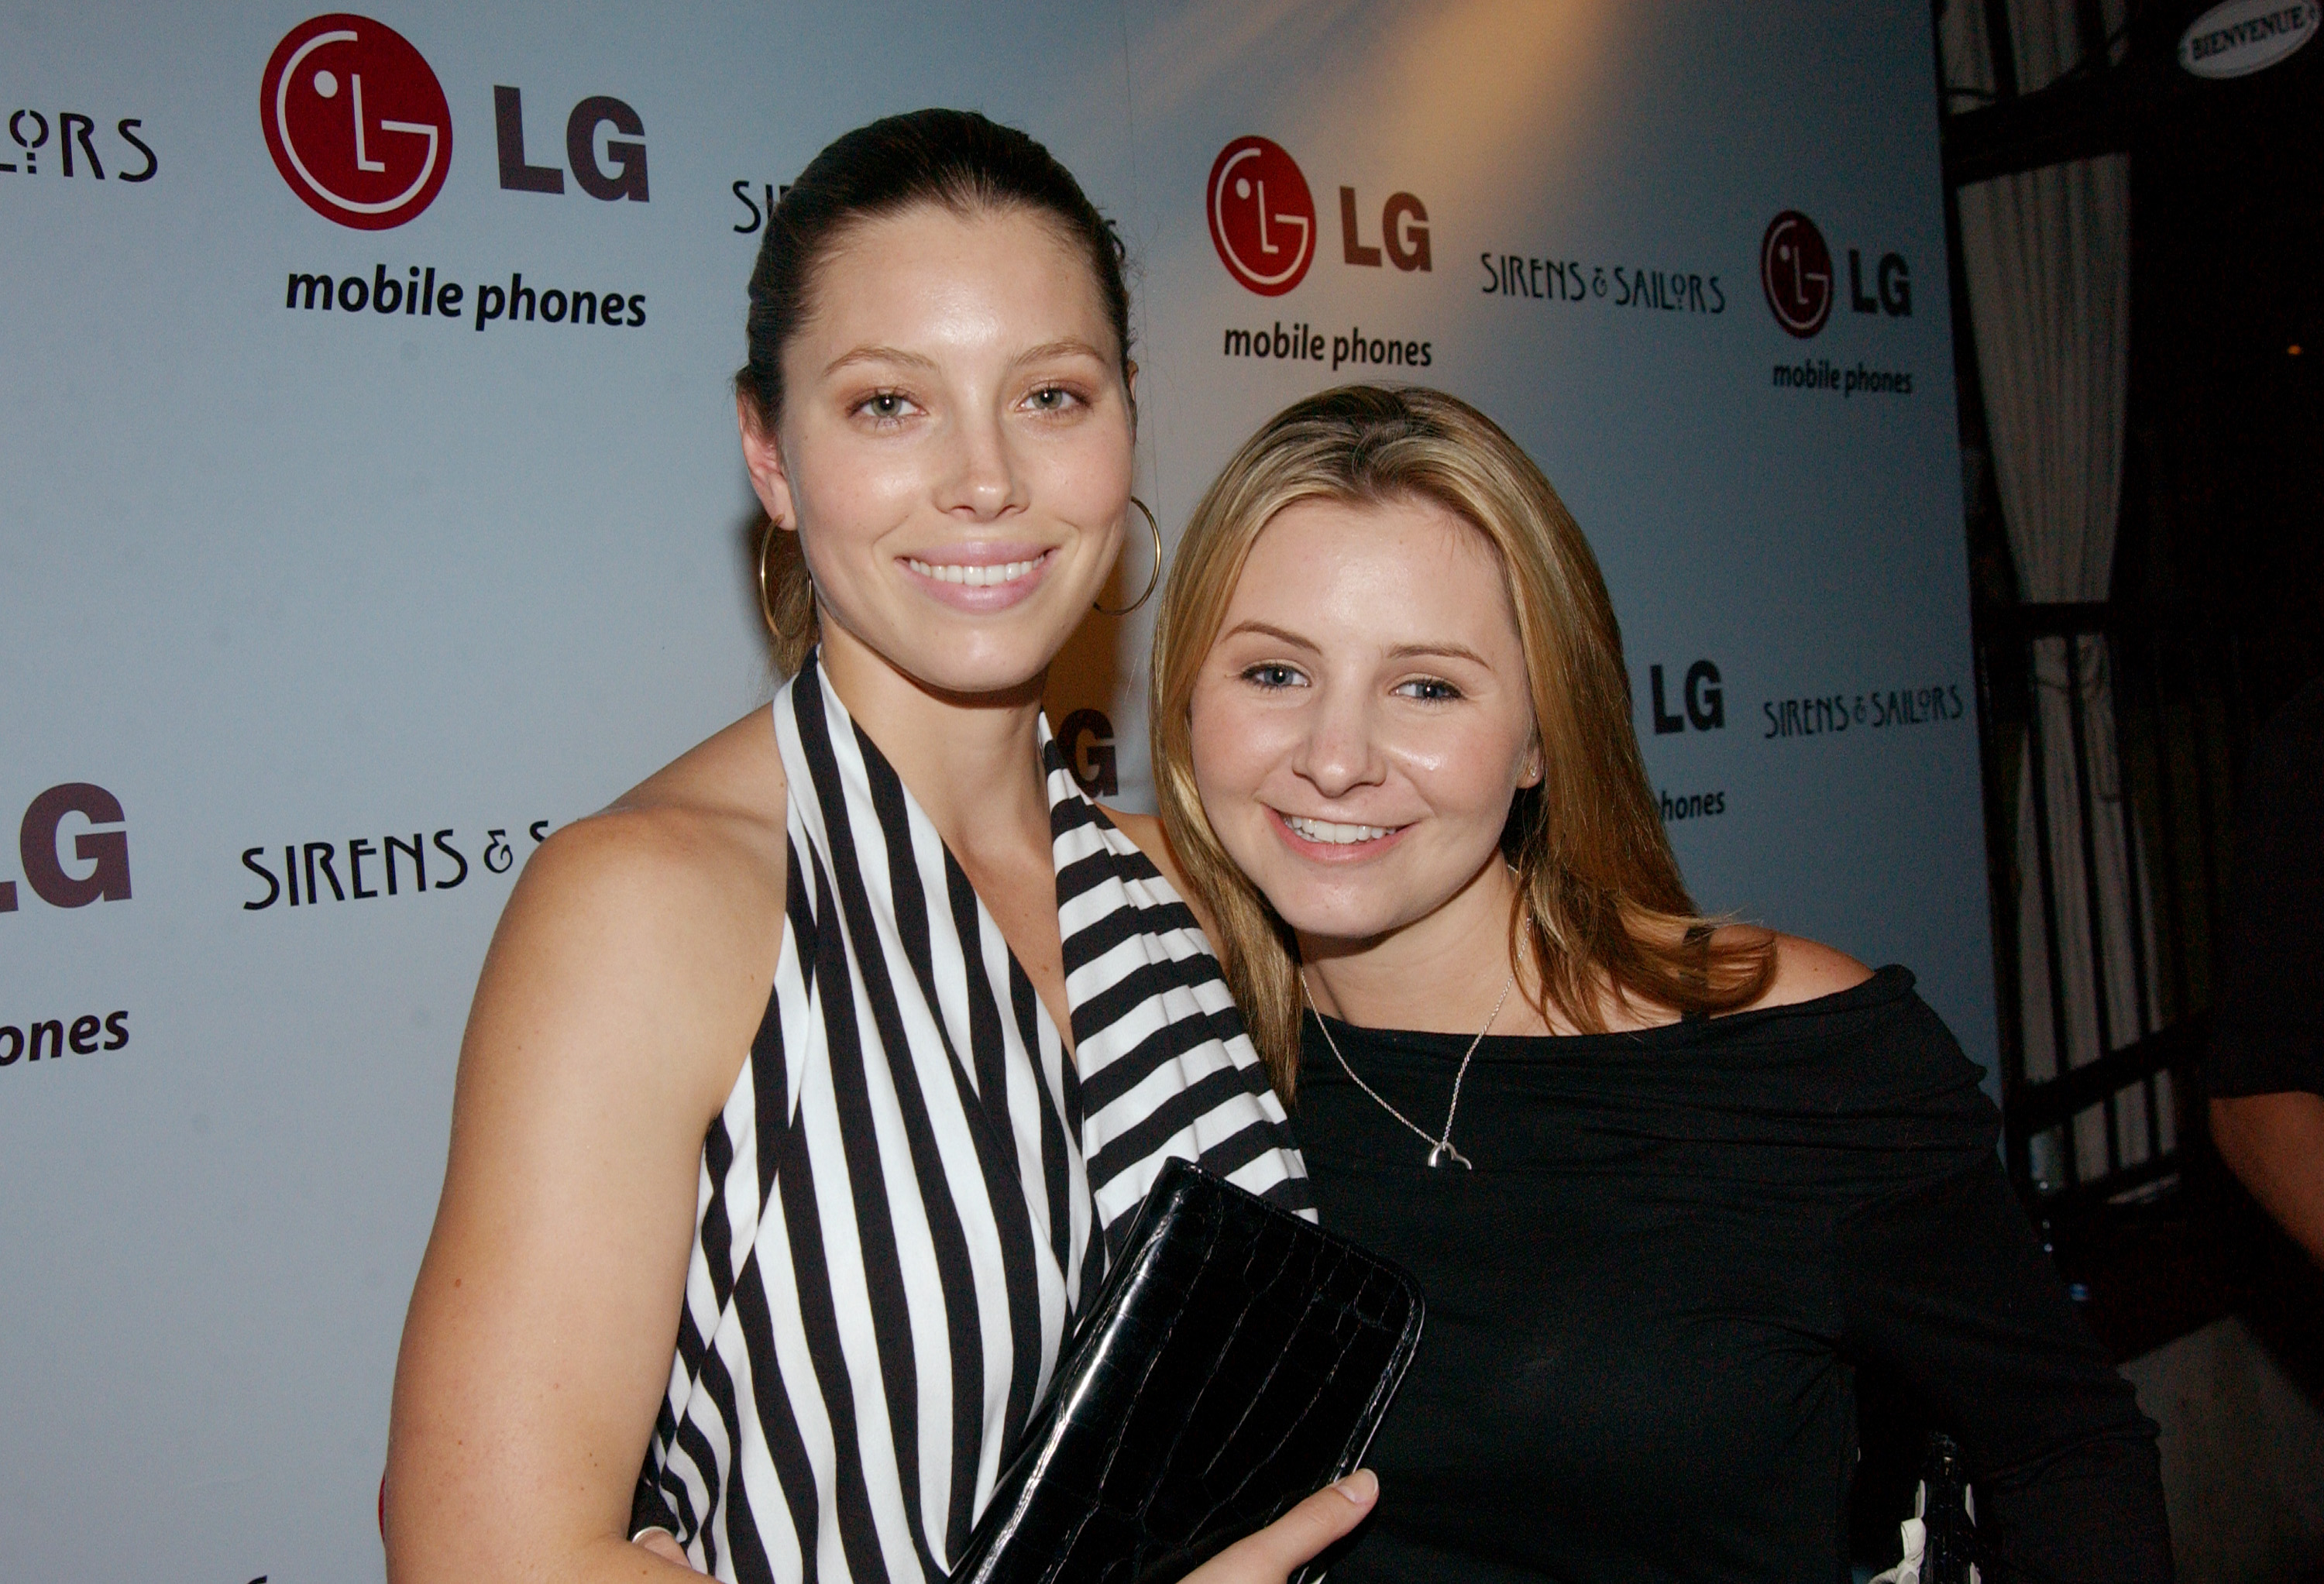 Jessica Biel and Beverley Mitchell laugh at their '7th Heaven' hair days in adorable #TBT